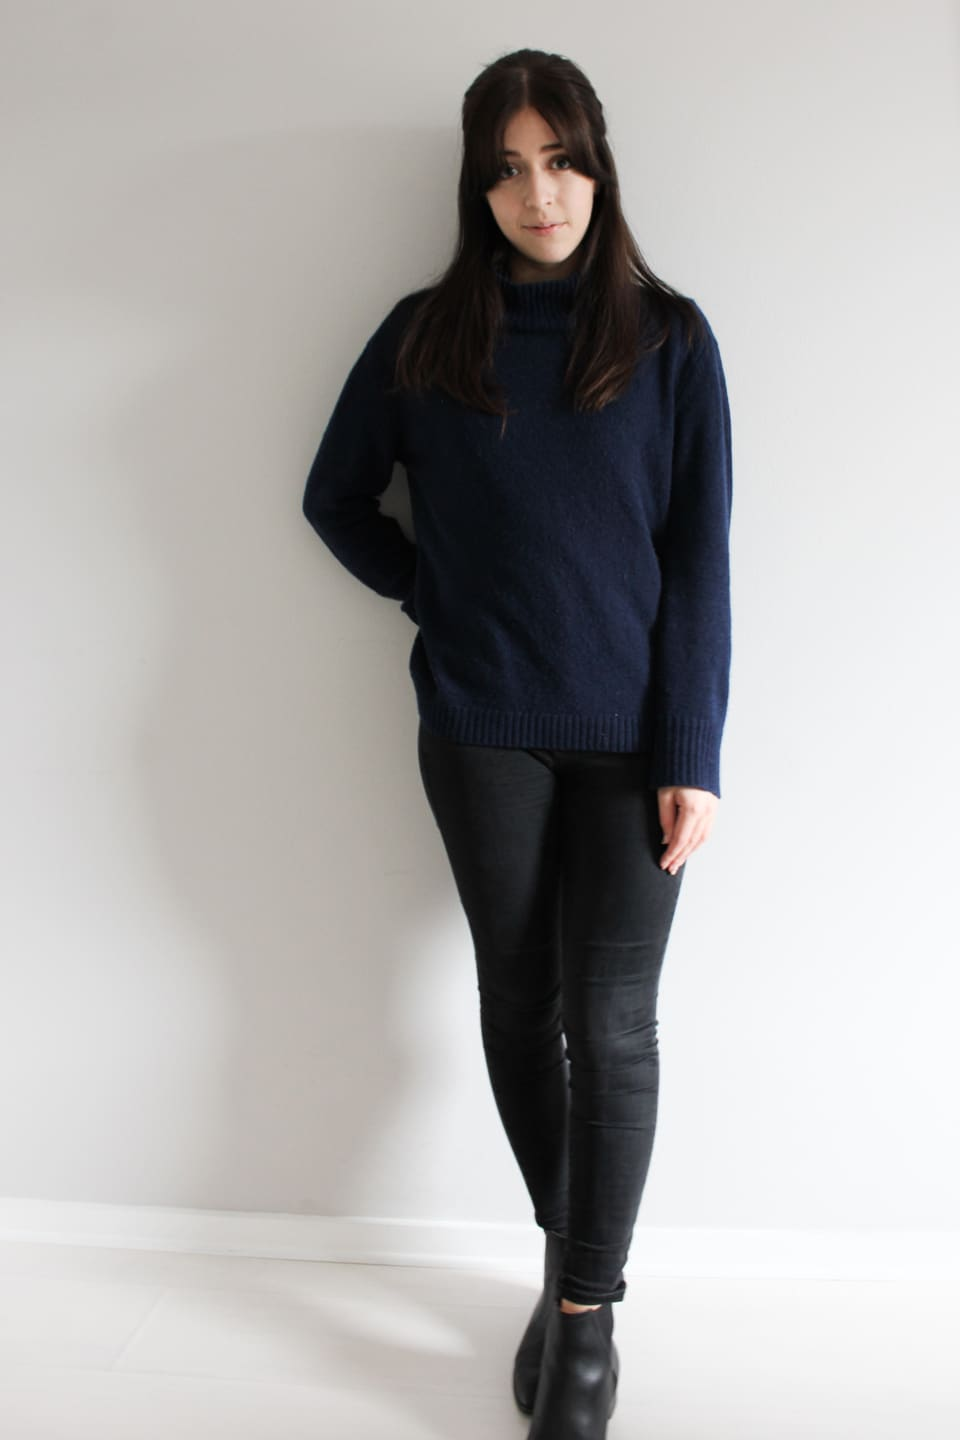 BAM Clothing Bamboo Merino Jumper Outfit